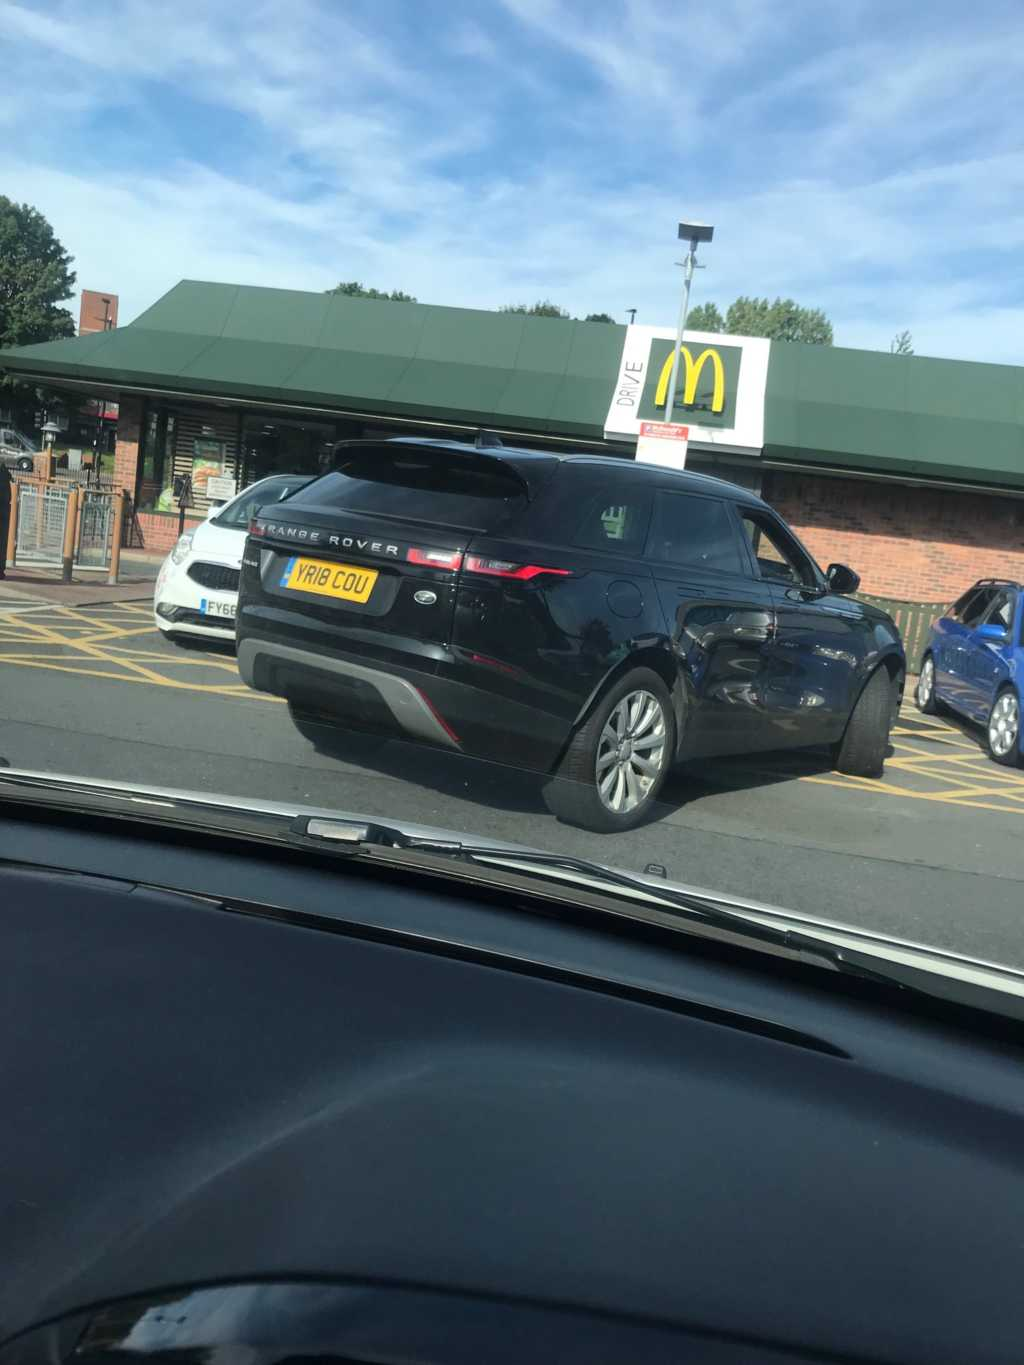 YR18 COU displaying Inconsiderate Parking